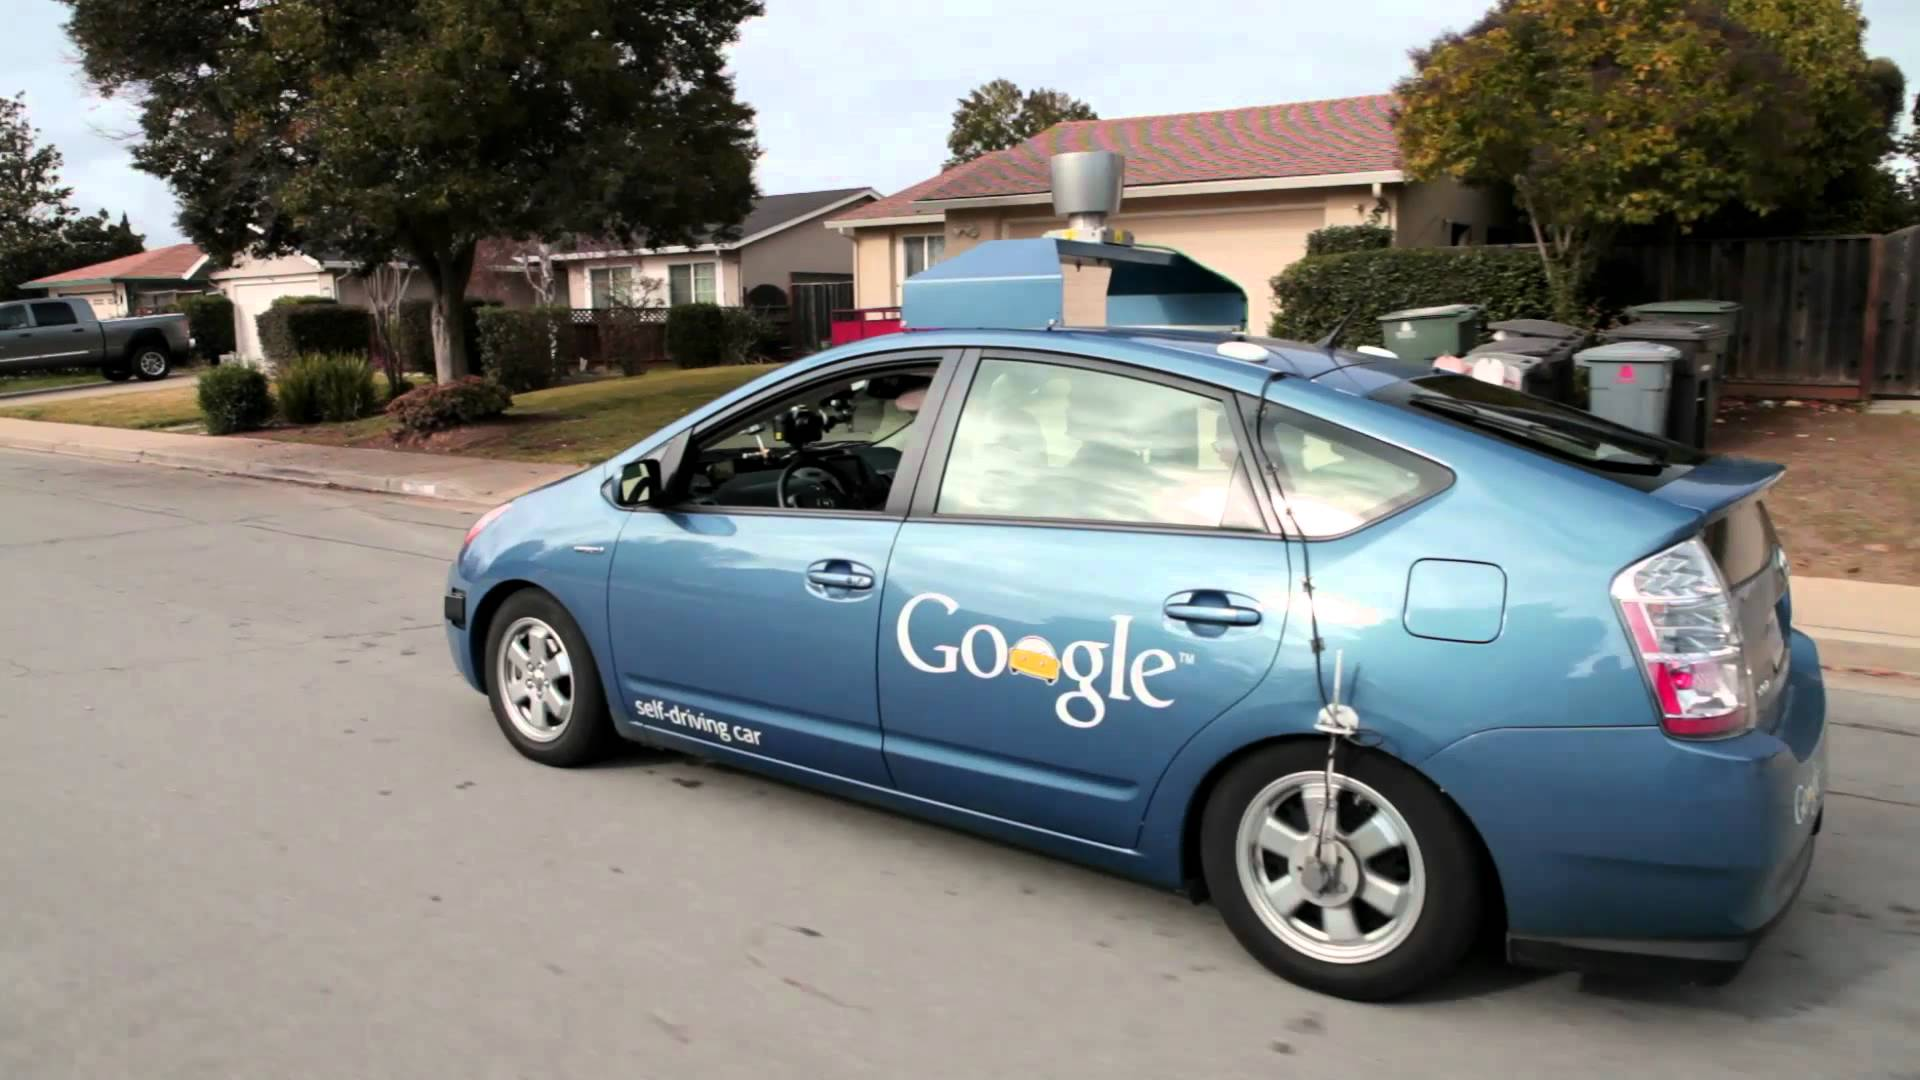 Google autonomous cars getting smarter and new features